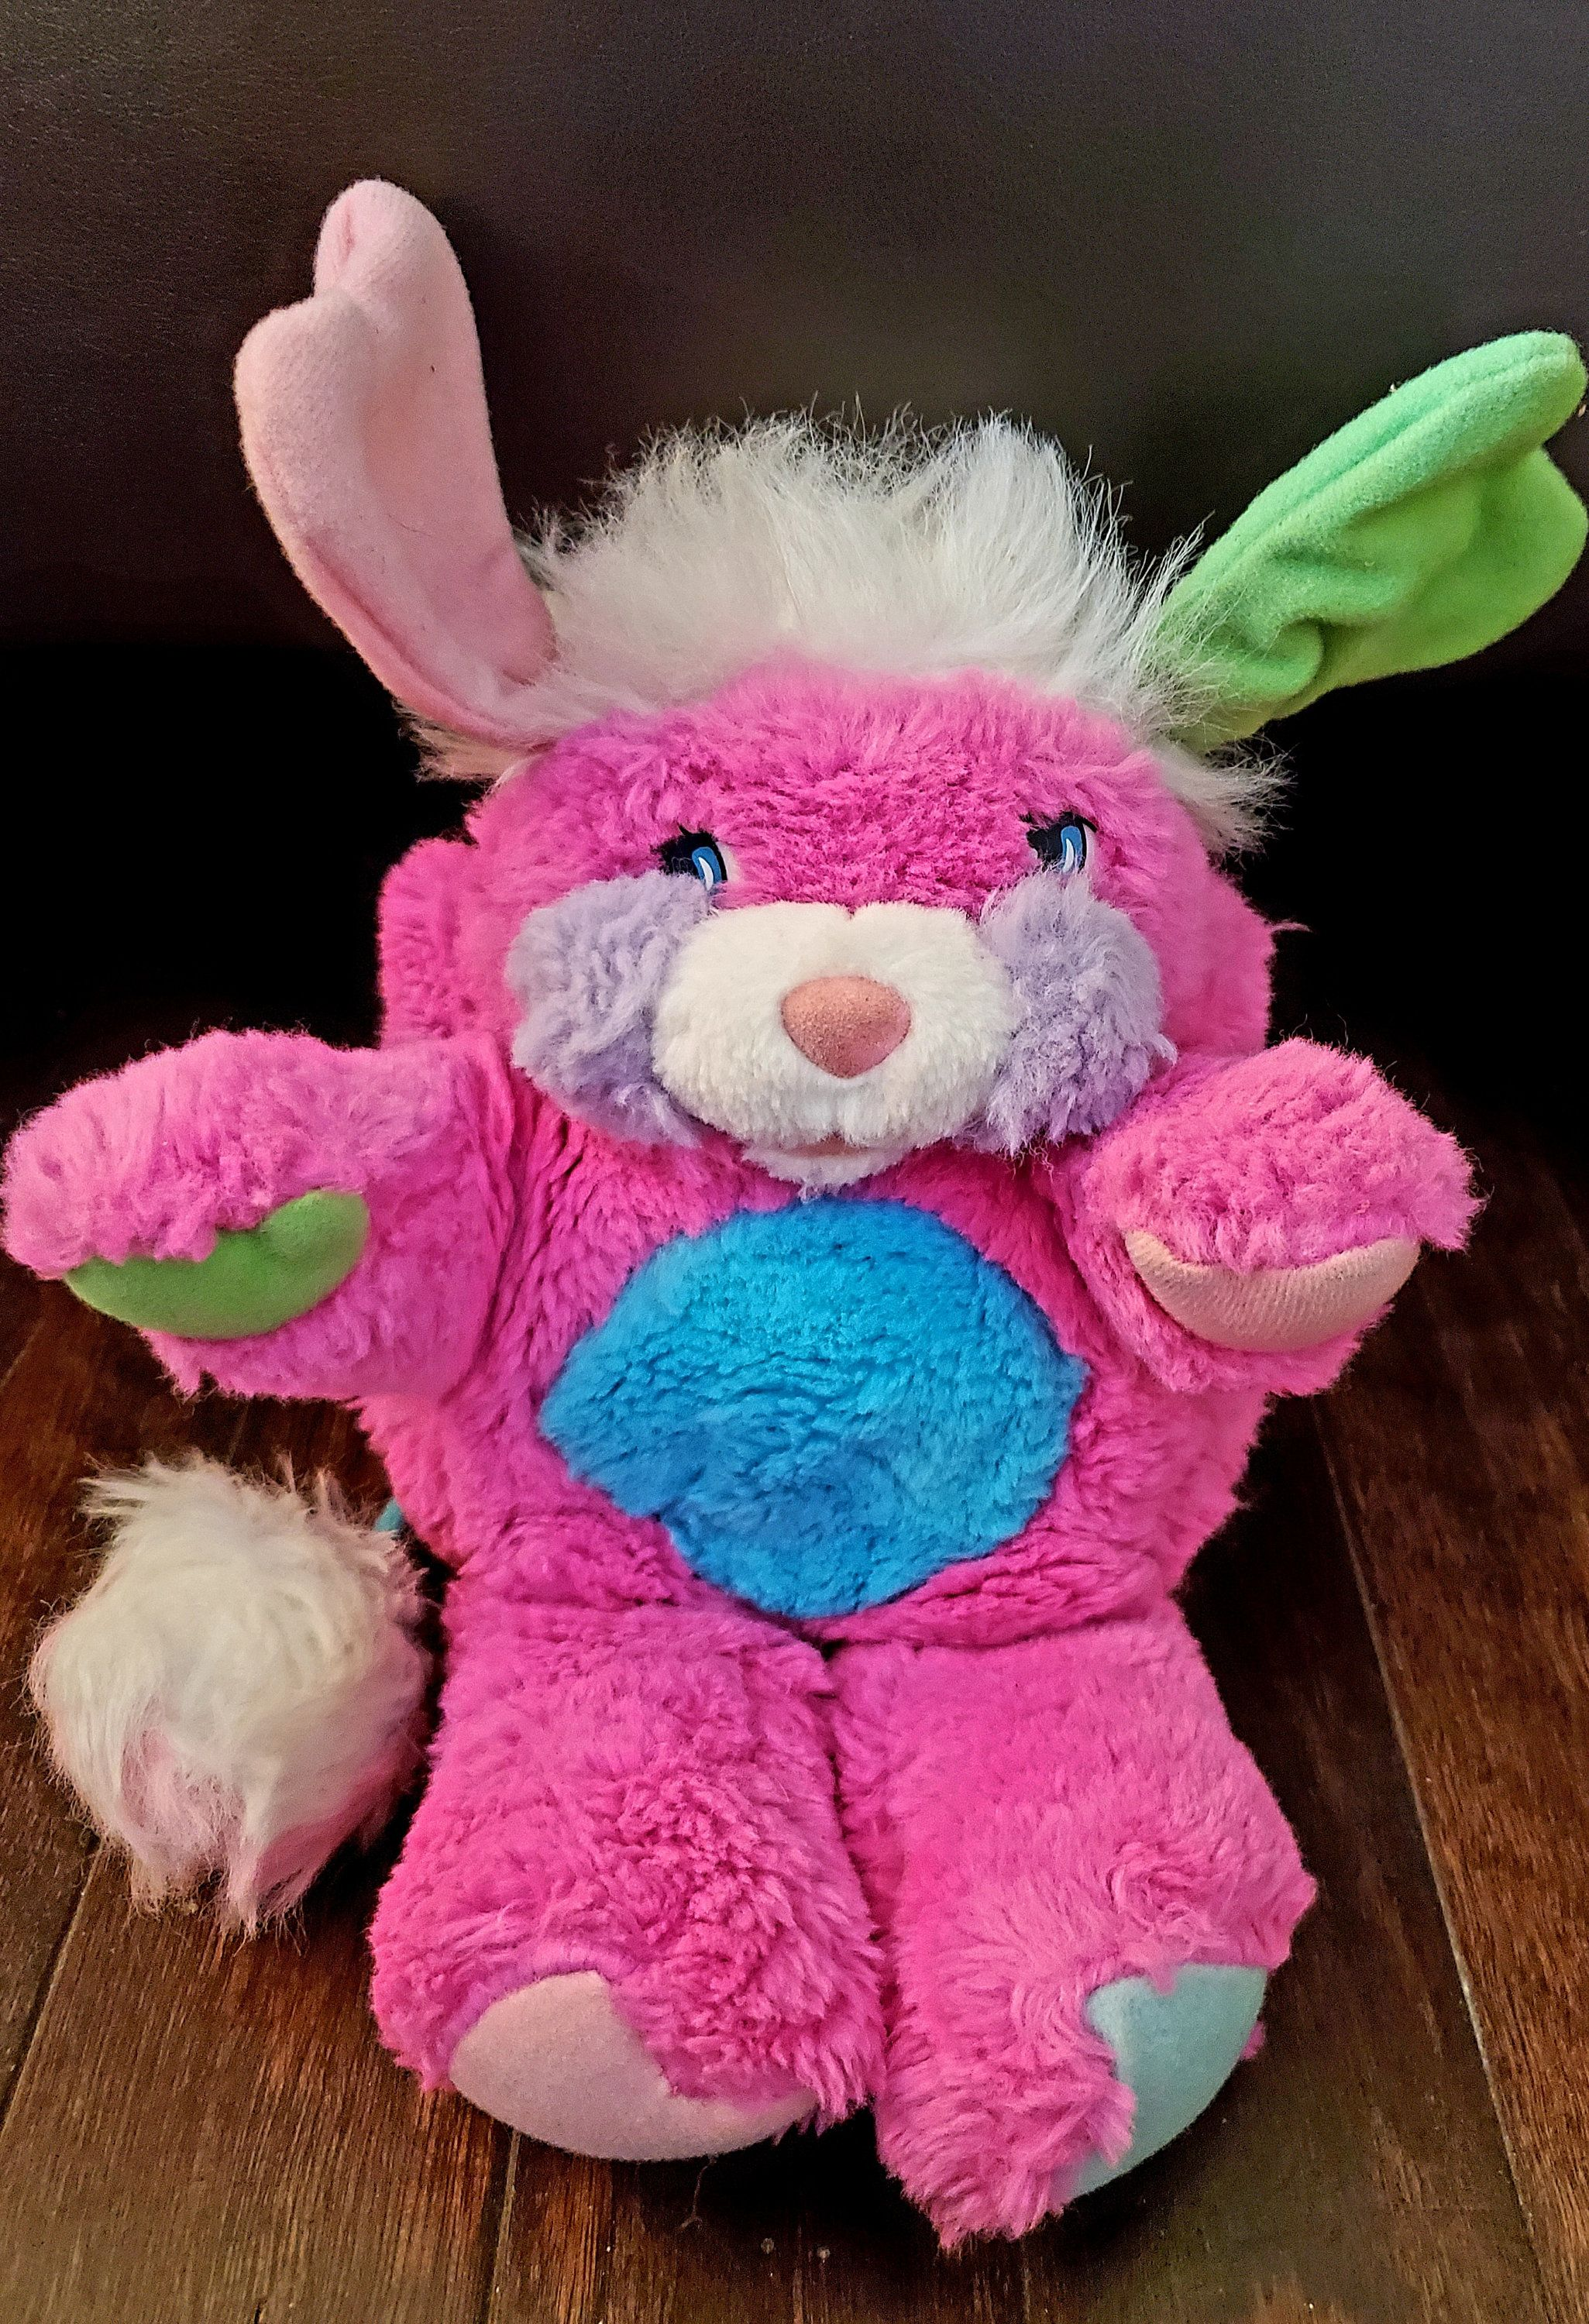 1986 PRIZE Popple 15 Plush by Those Characters From Etsy